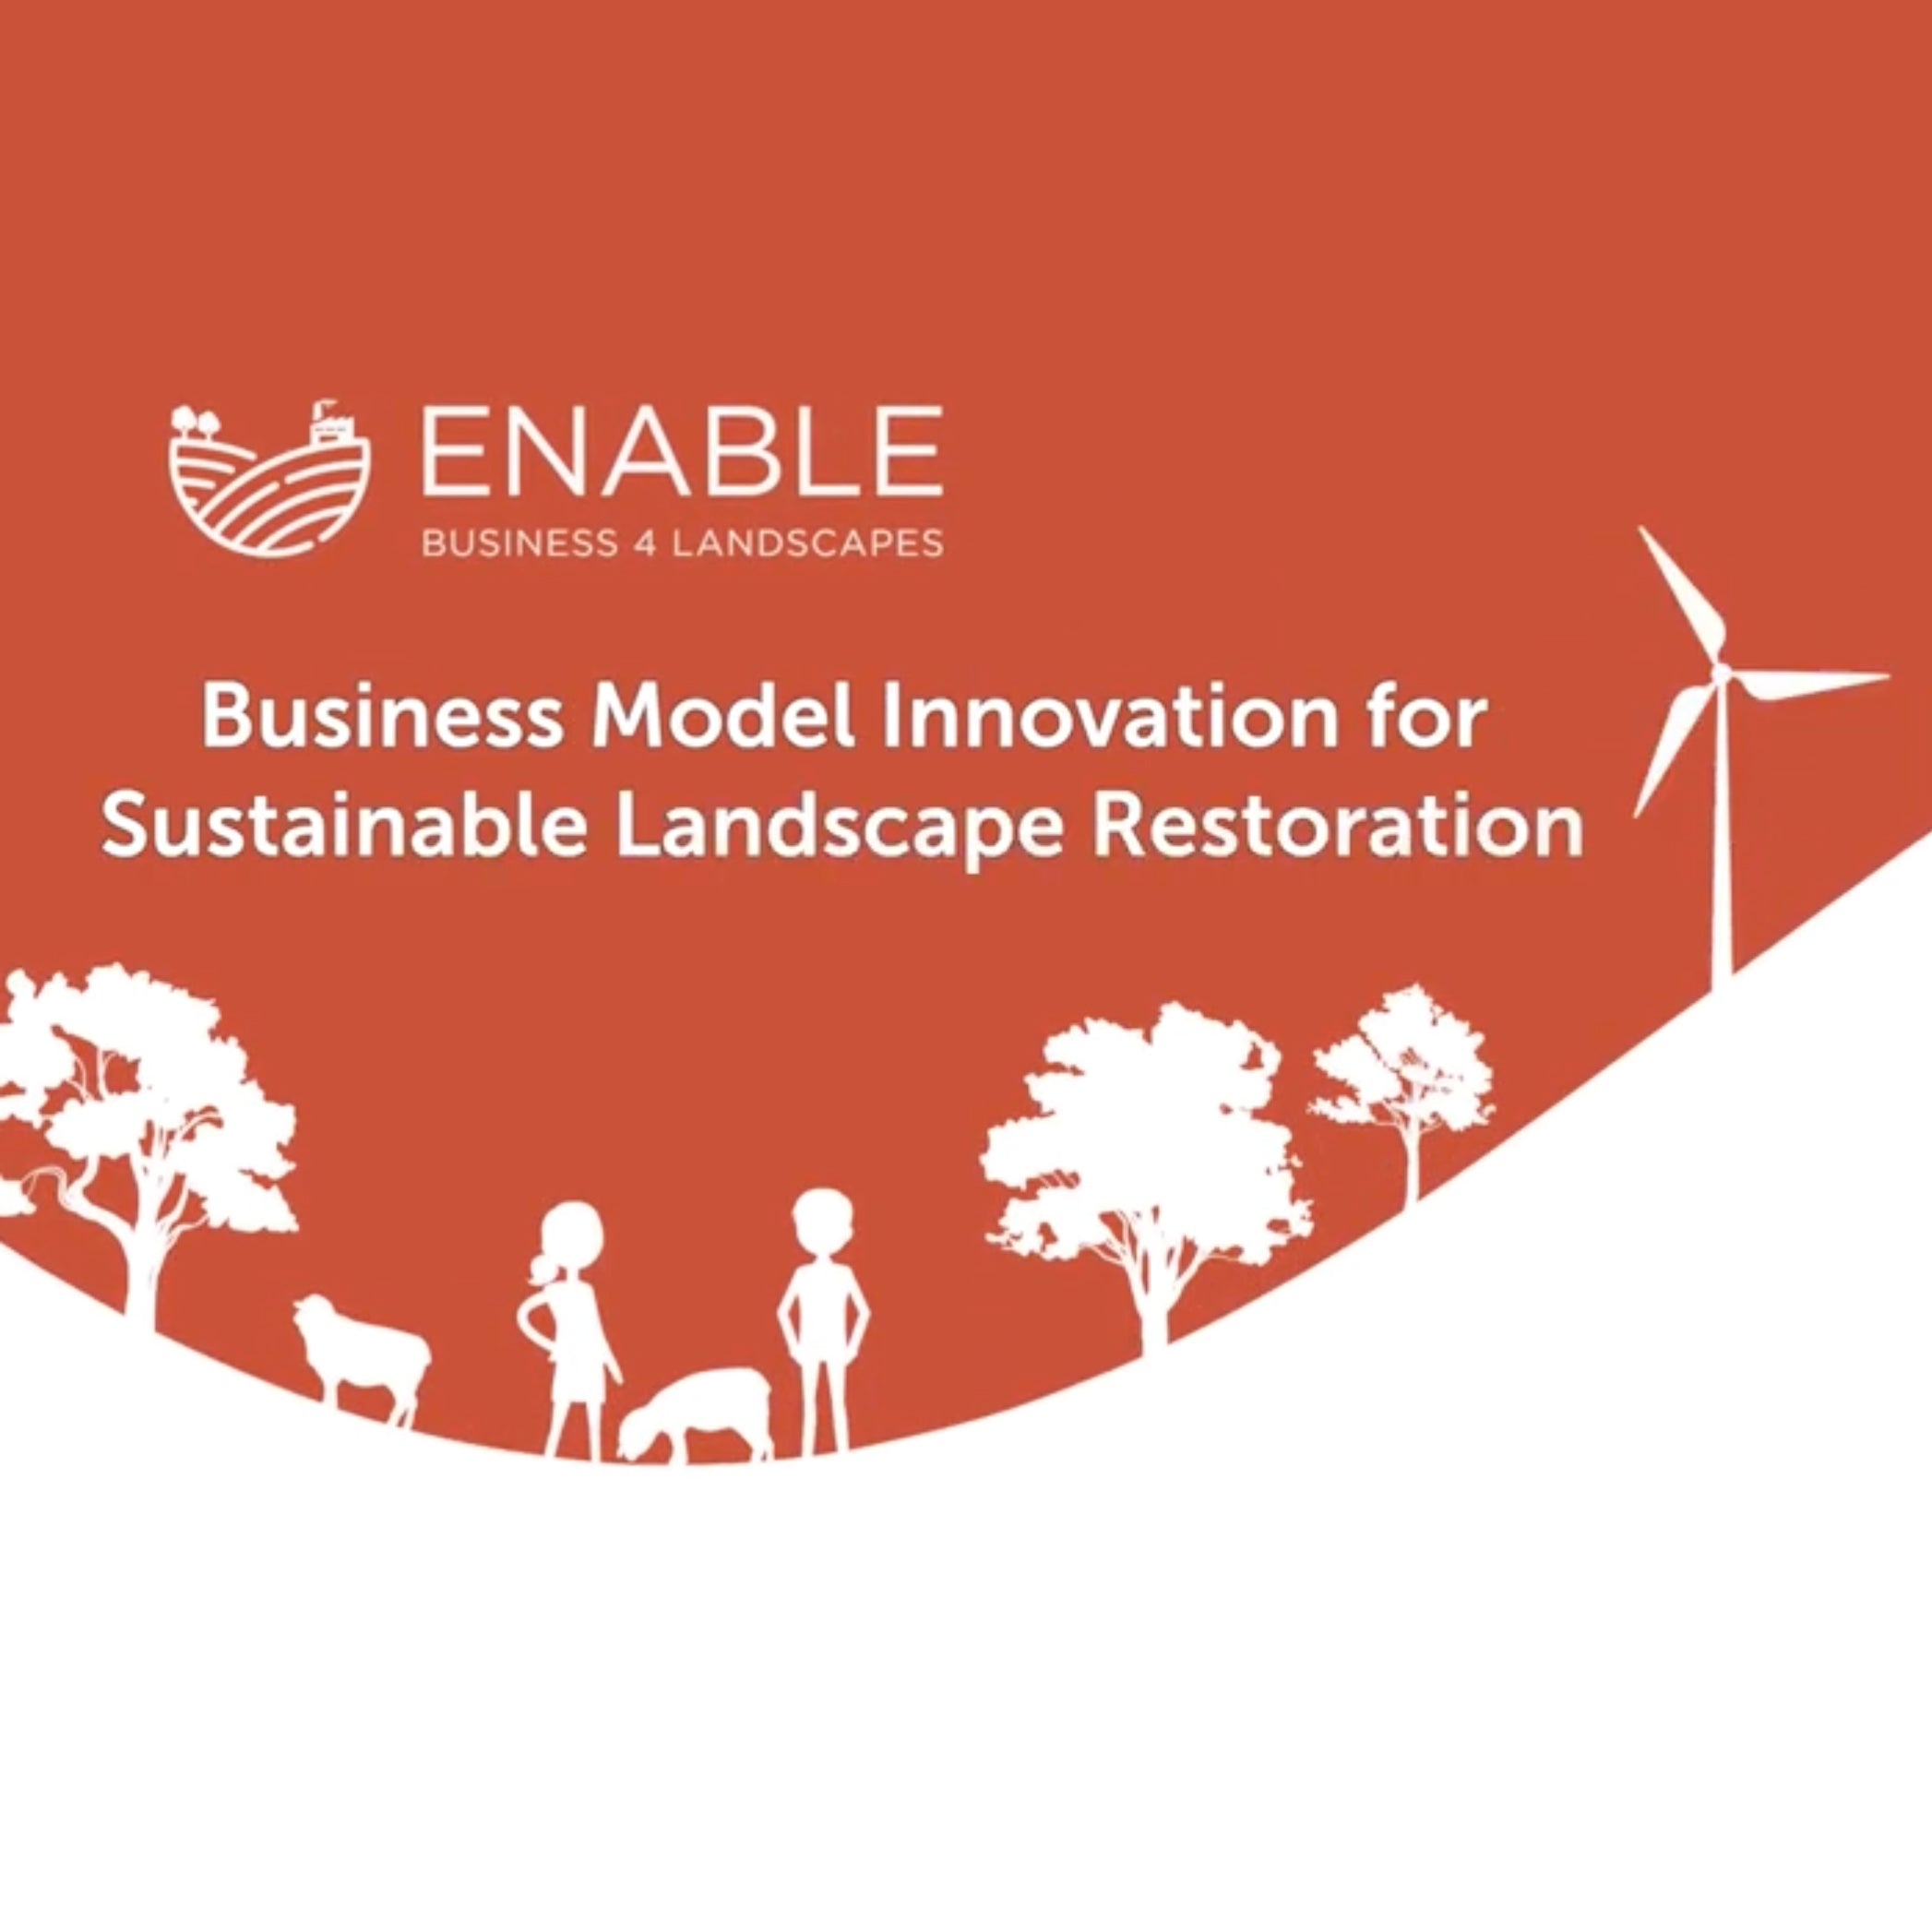 Business Model Innovation for Sustainable Landscape Restoration